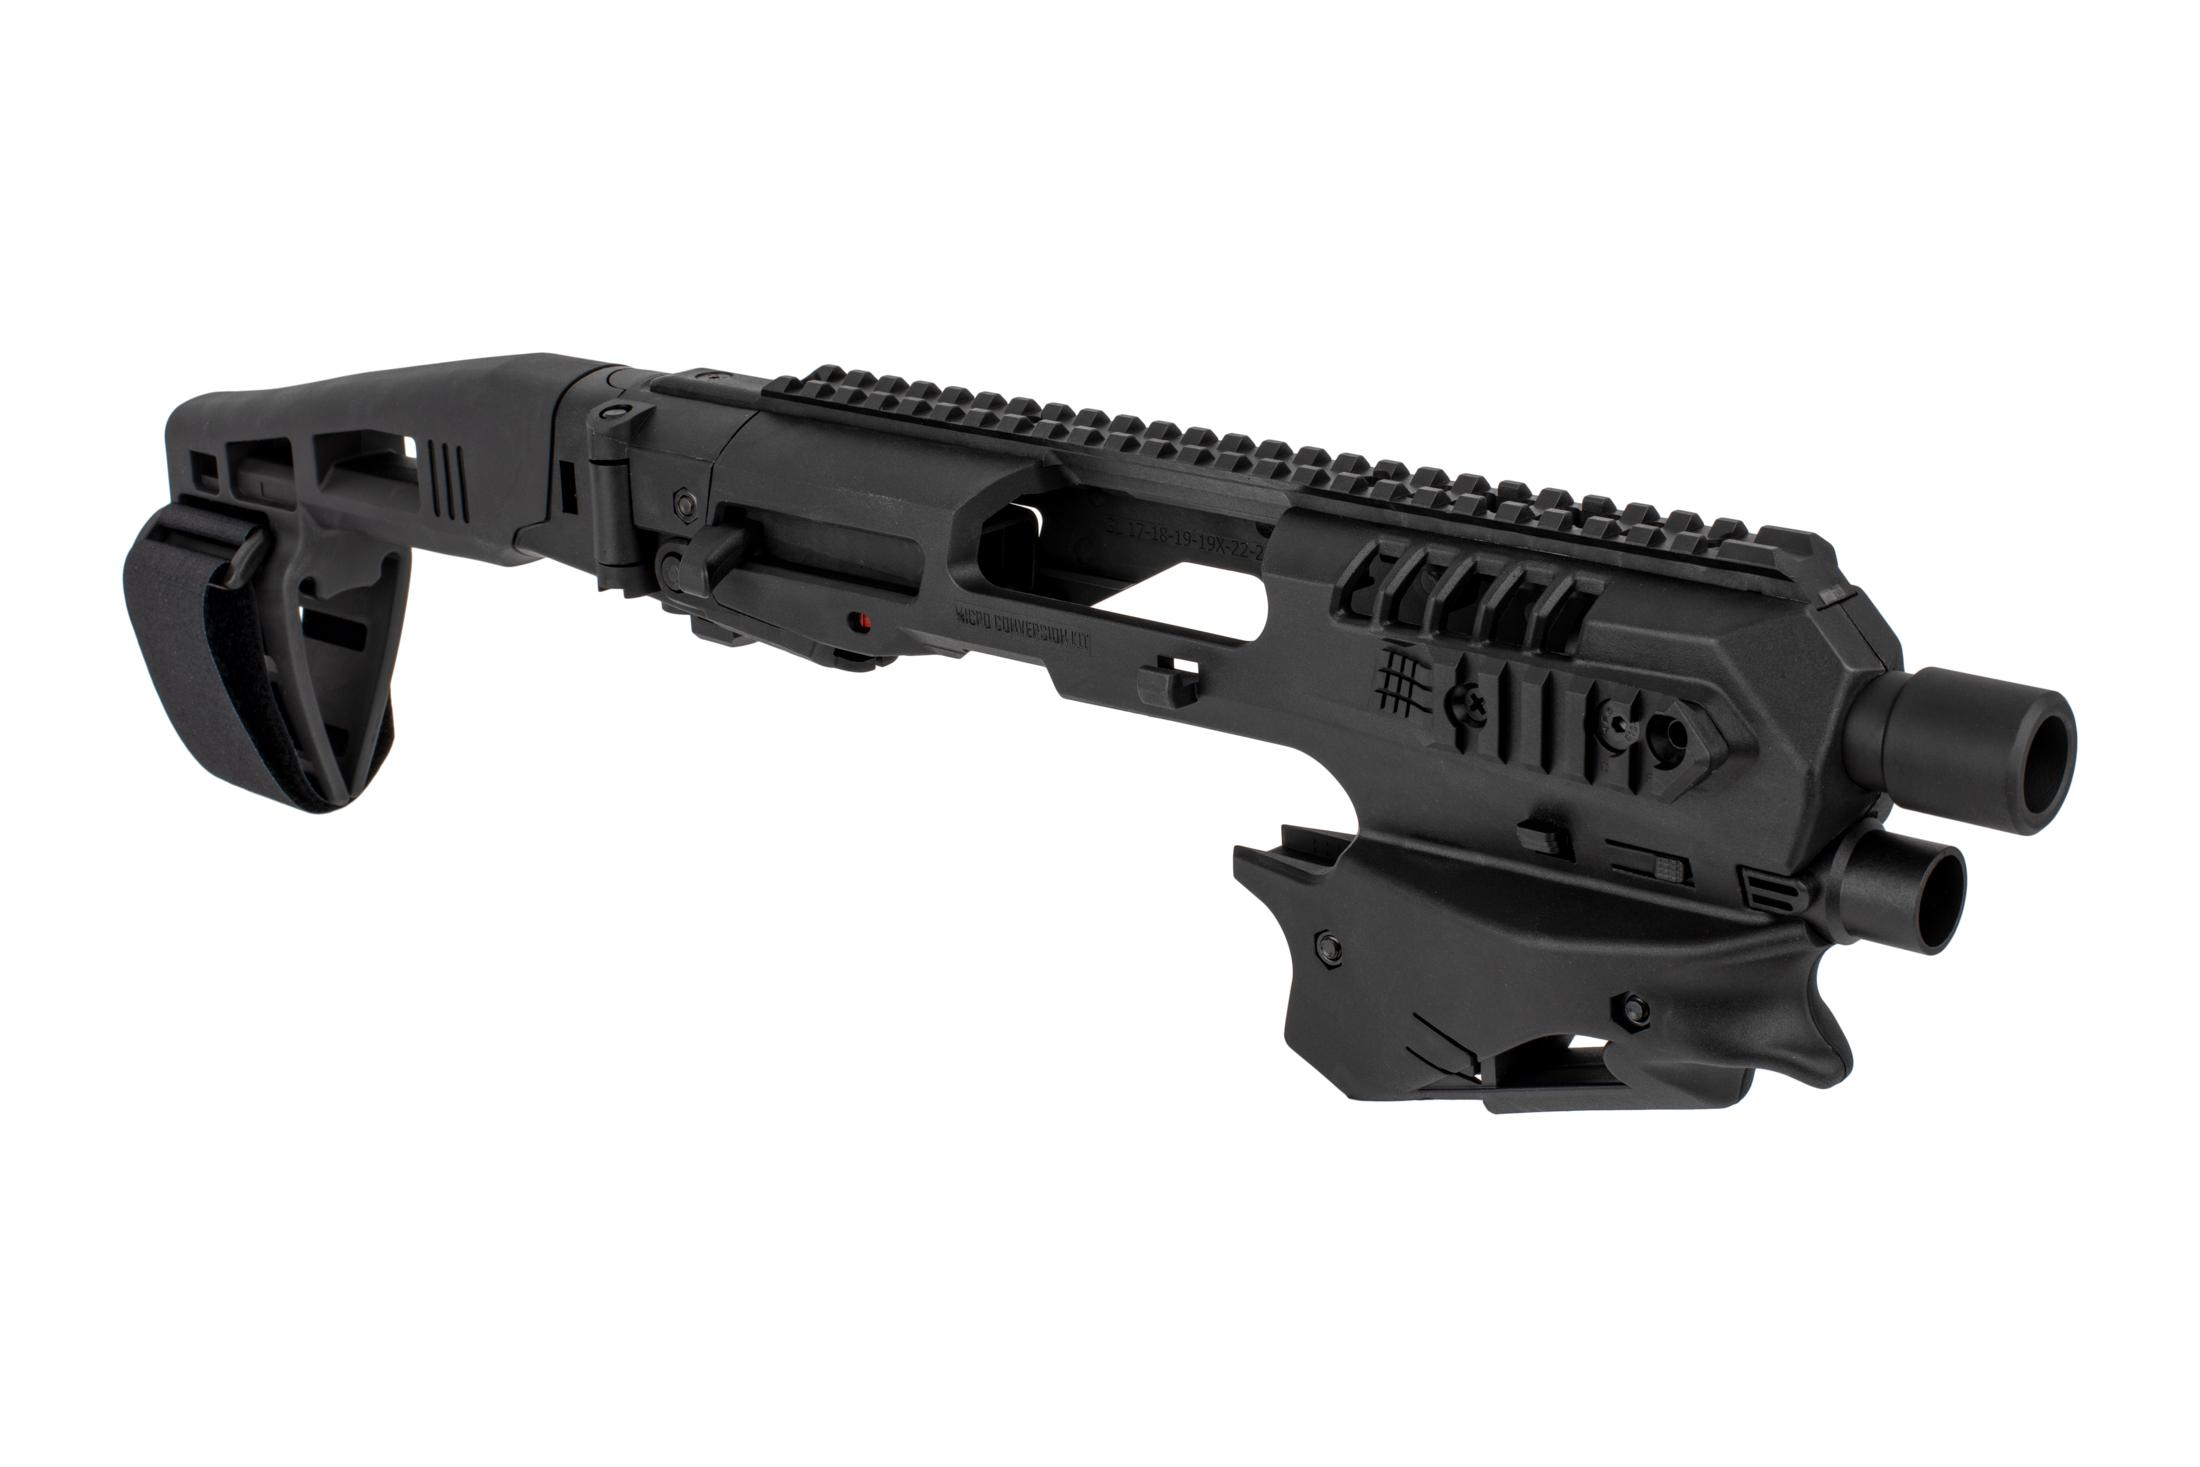 Command Arms Micro Conversion Kit for Glock handguns includes a long stabilizer for enhanced comfort and accuracy